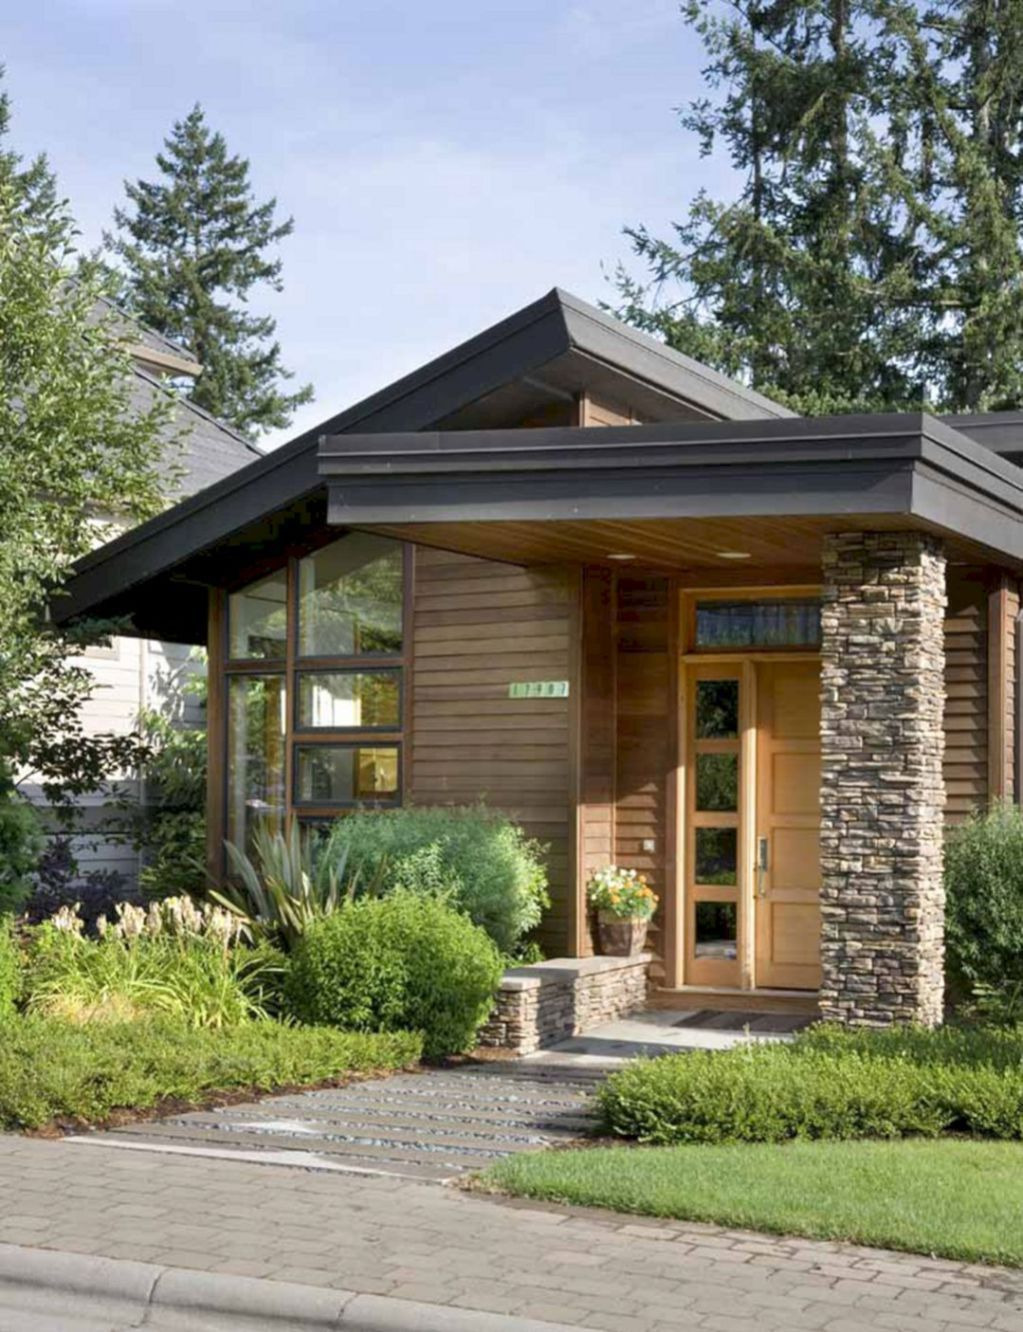 Small Home Design Photos Luxury top 10 Modern Tiny House Design and Small Homes Collections